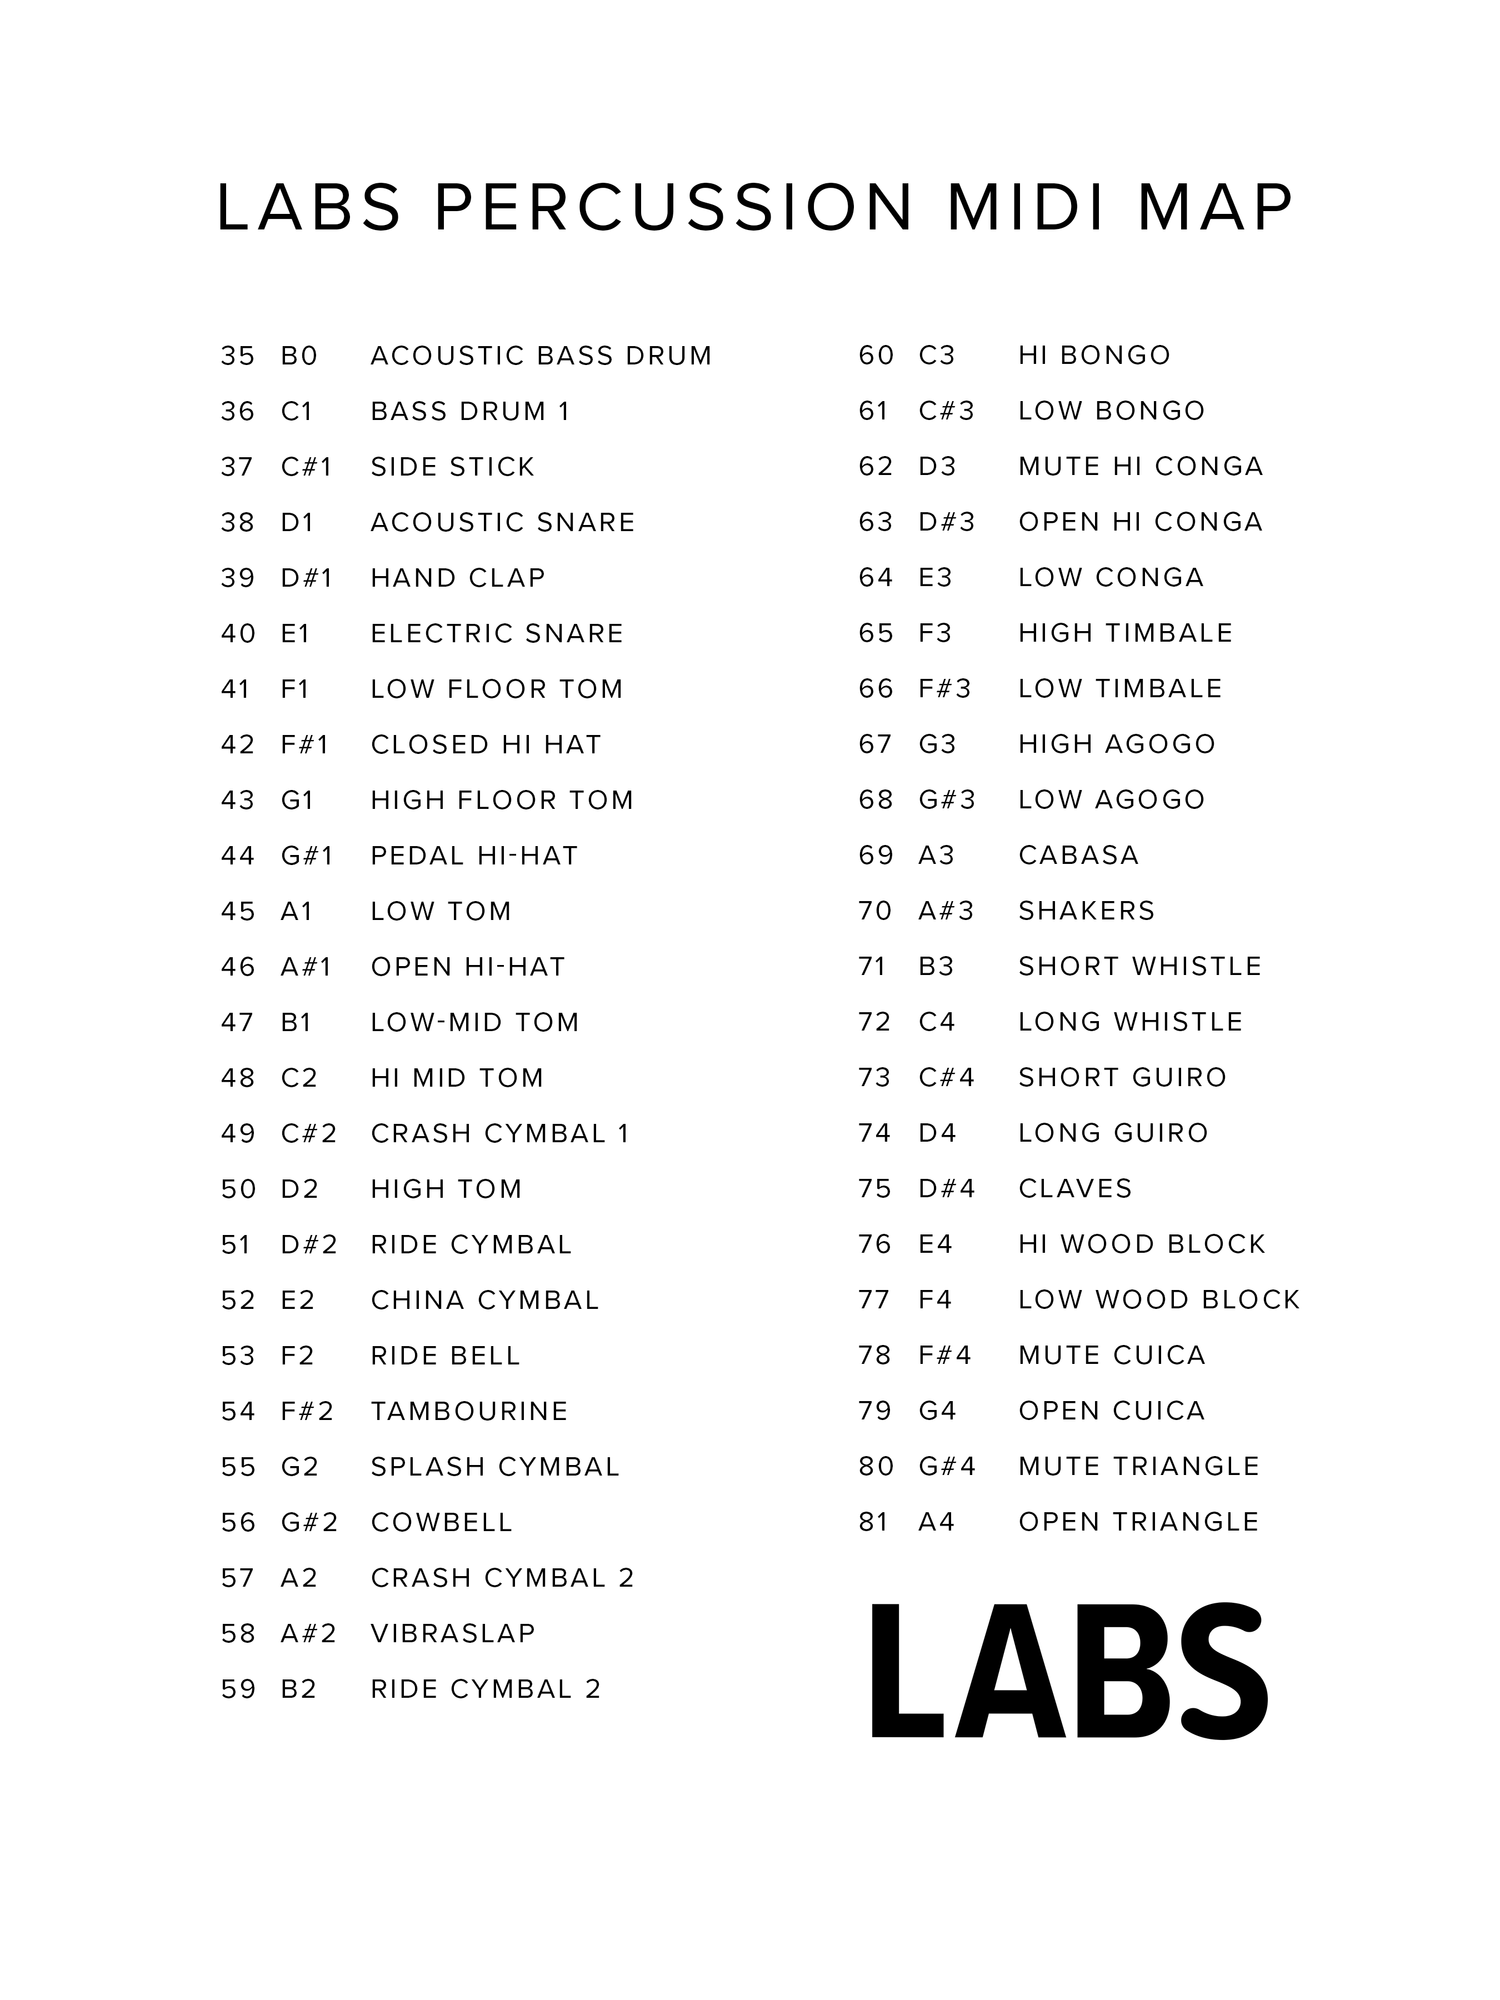 LABS Percussion Map-1.png